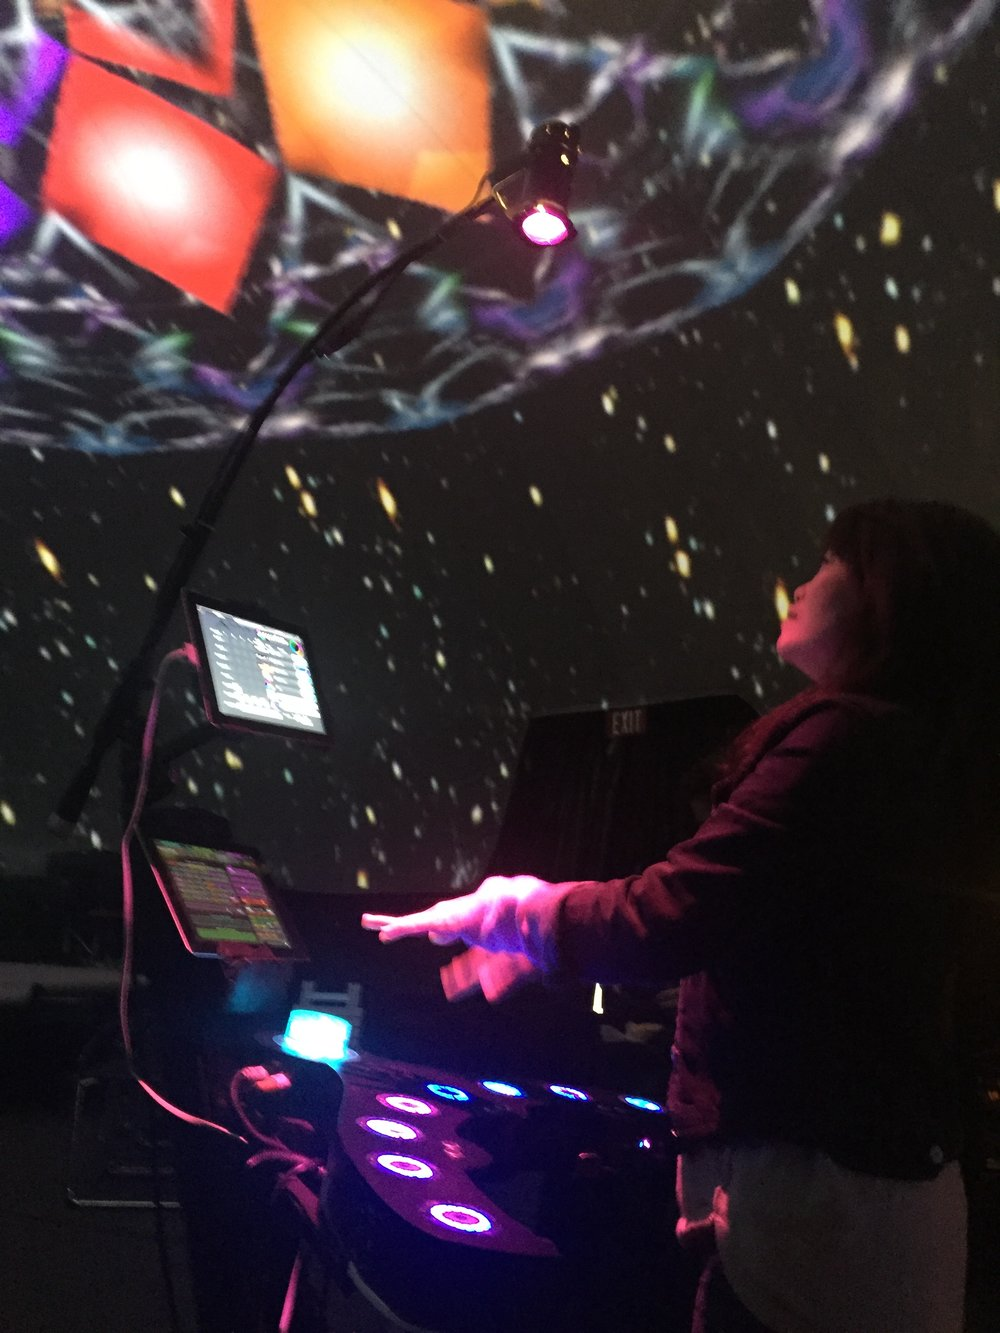 paceHarp touchless motion music and visuals controller in Vortex Dome LA.  SpaceHarp player generates live music and seamless fulldome art!